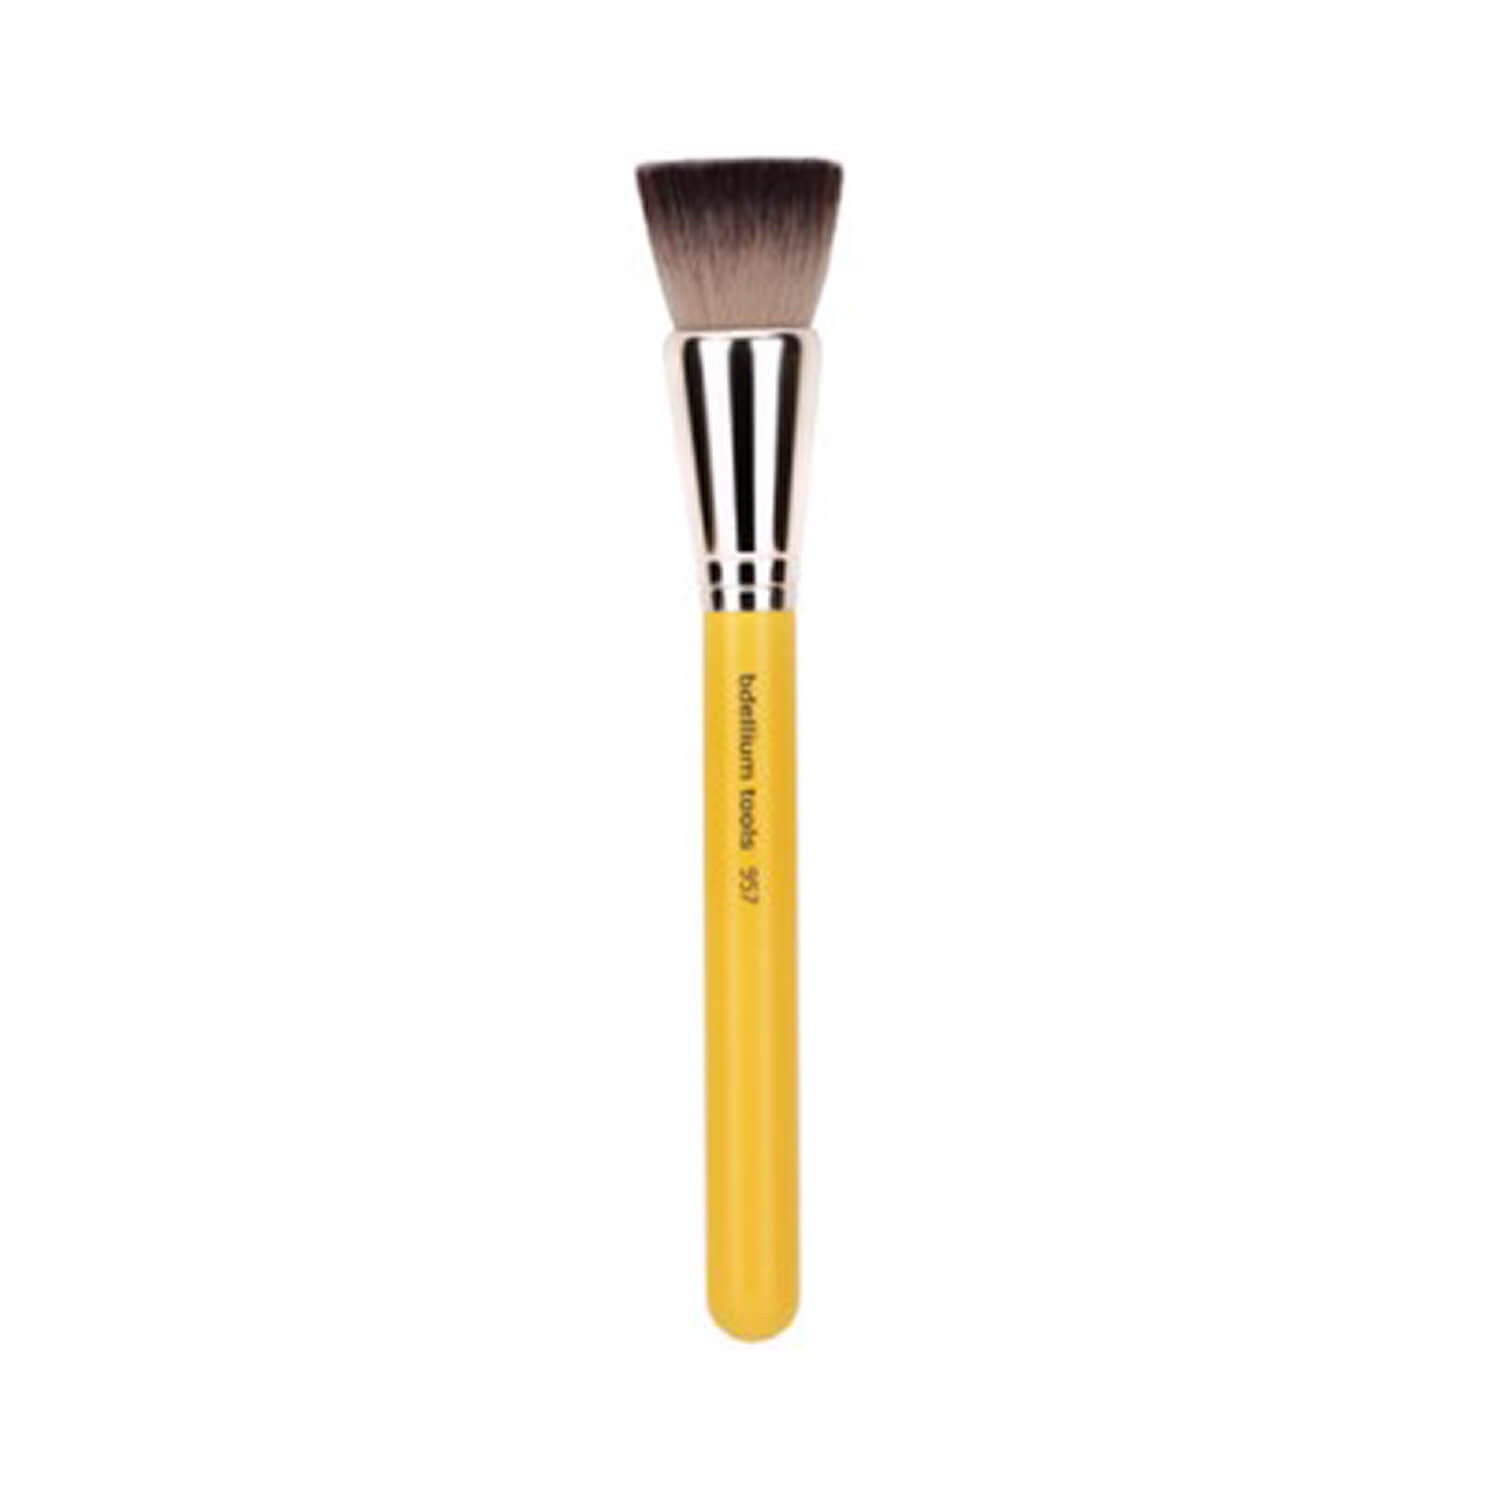 BDellium Tools Studio Line 957 Precision Kabuki Brush Yellow